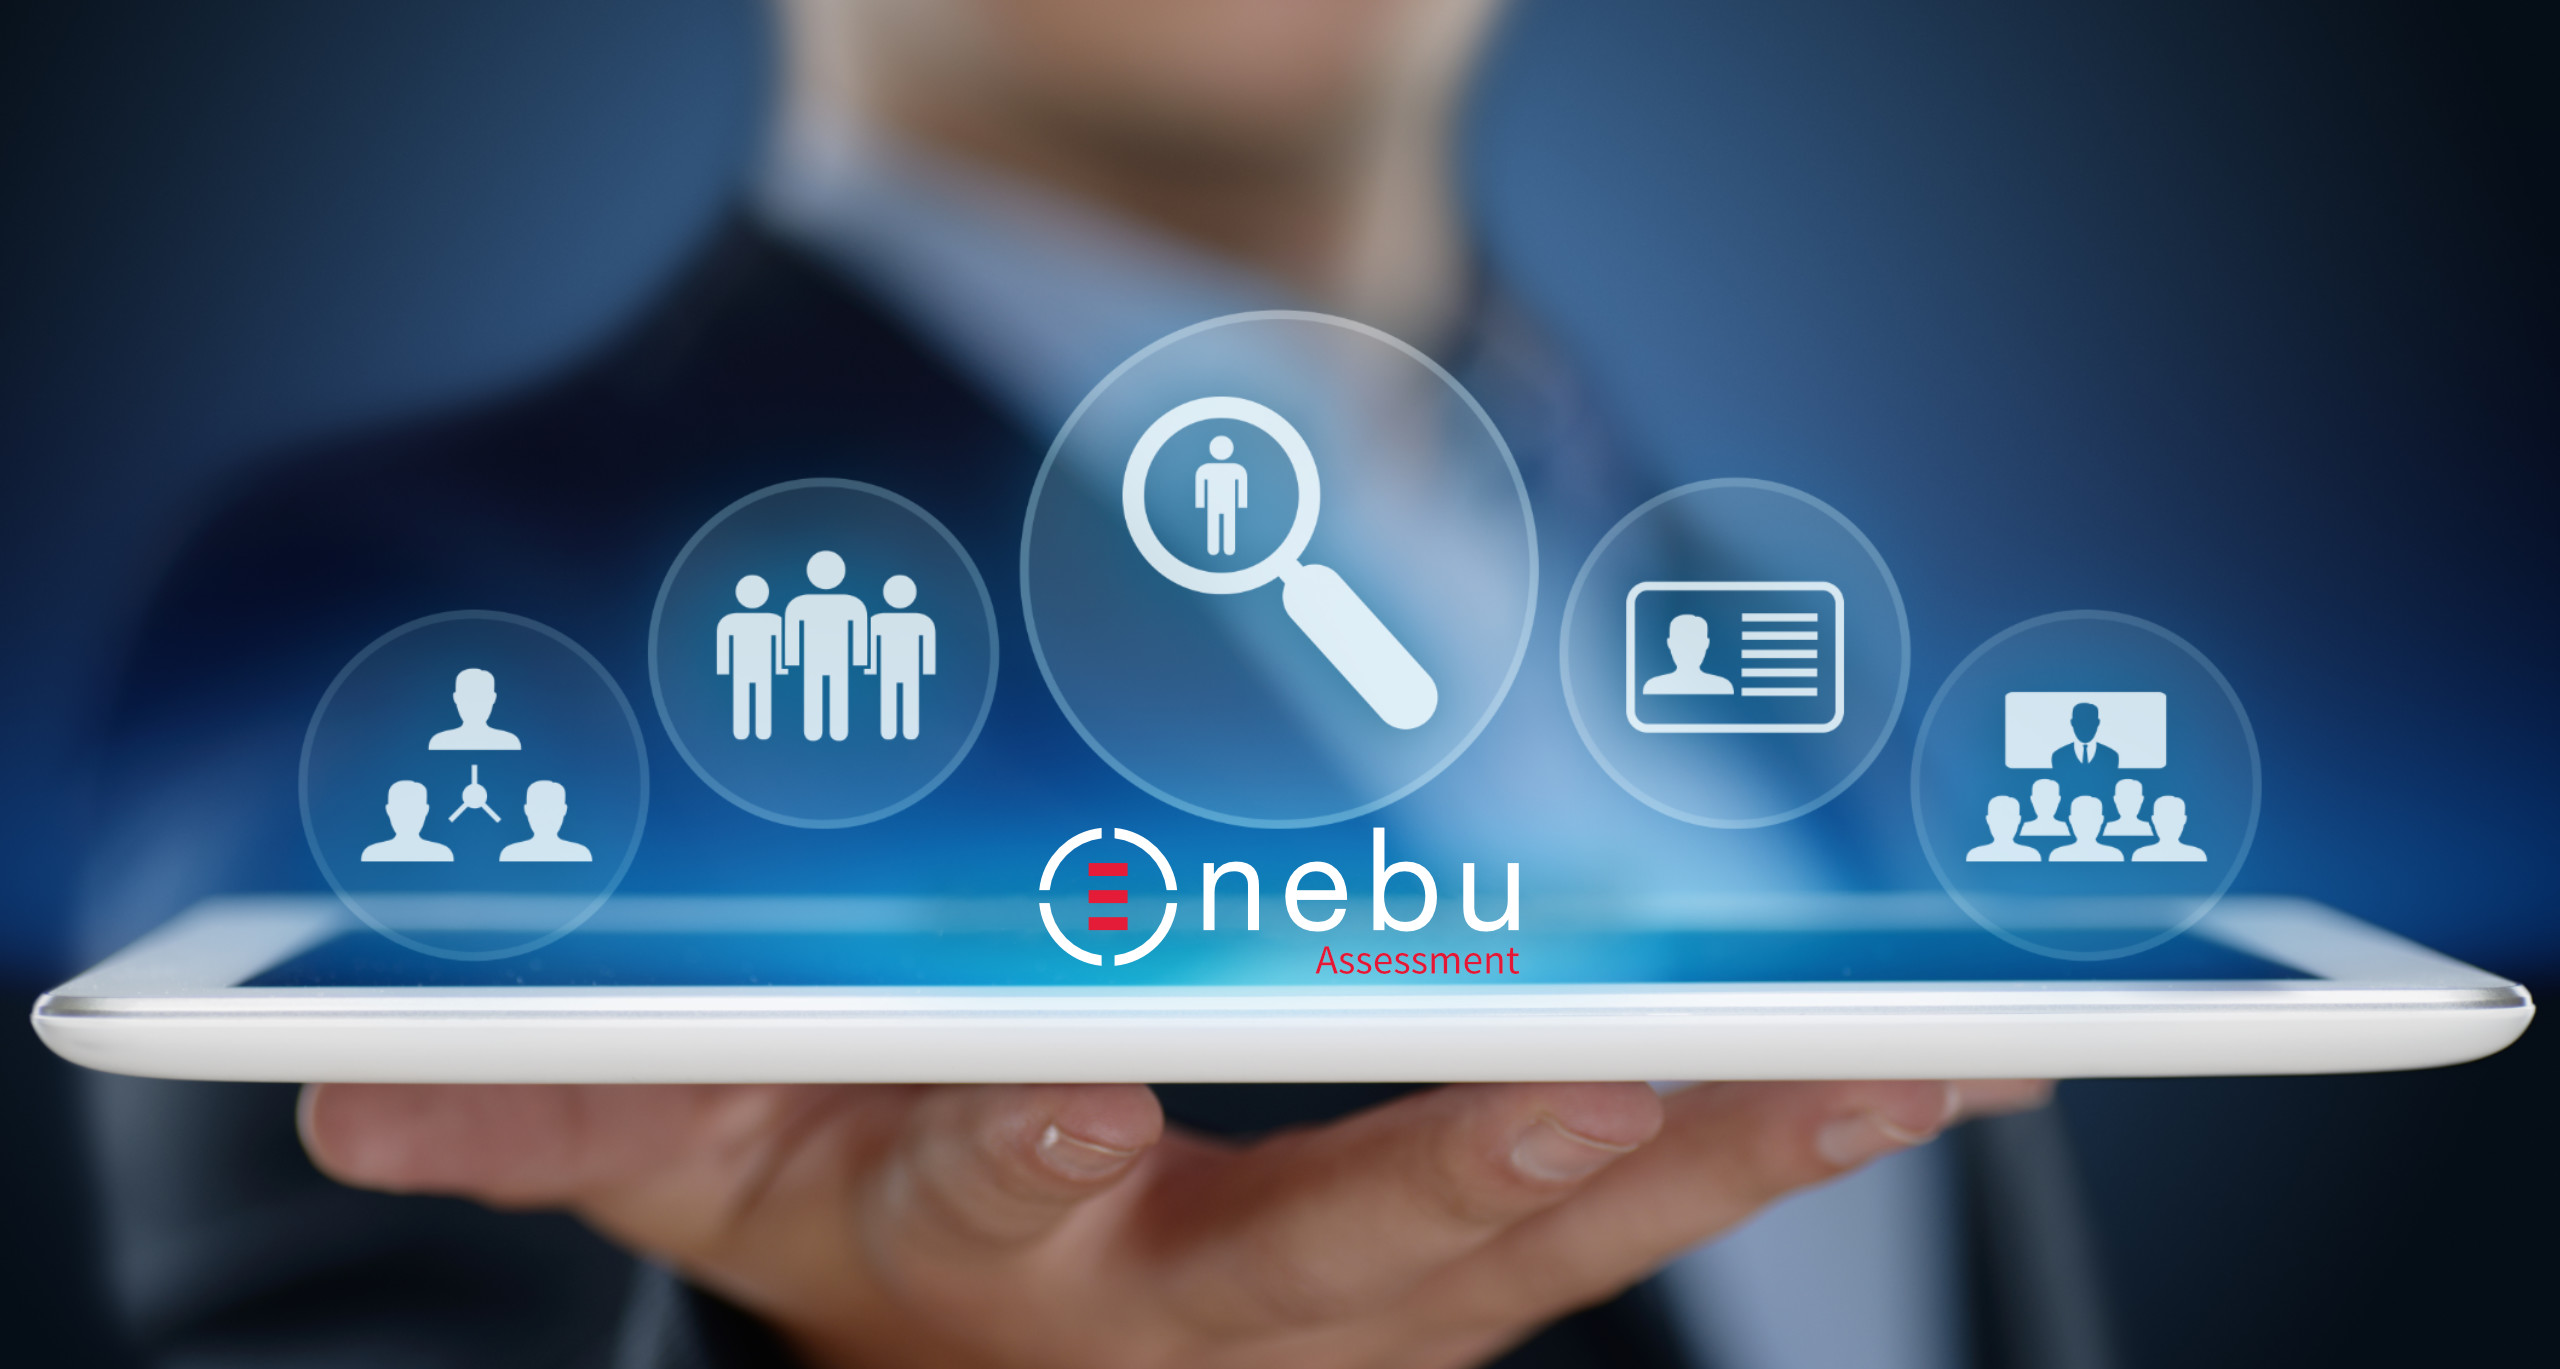 Learn more about how Nebu Assessment will increase the effectivity and efficiency of your assessment processes